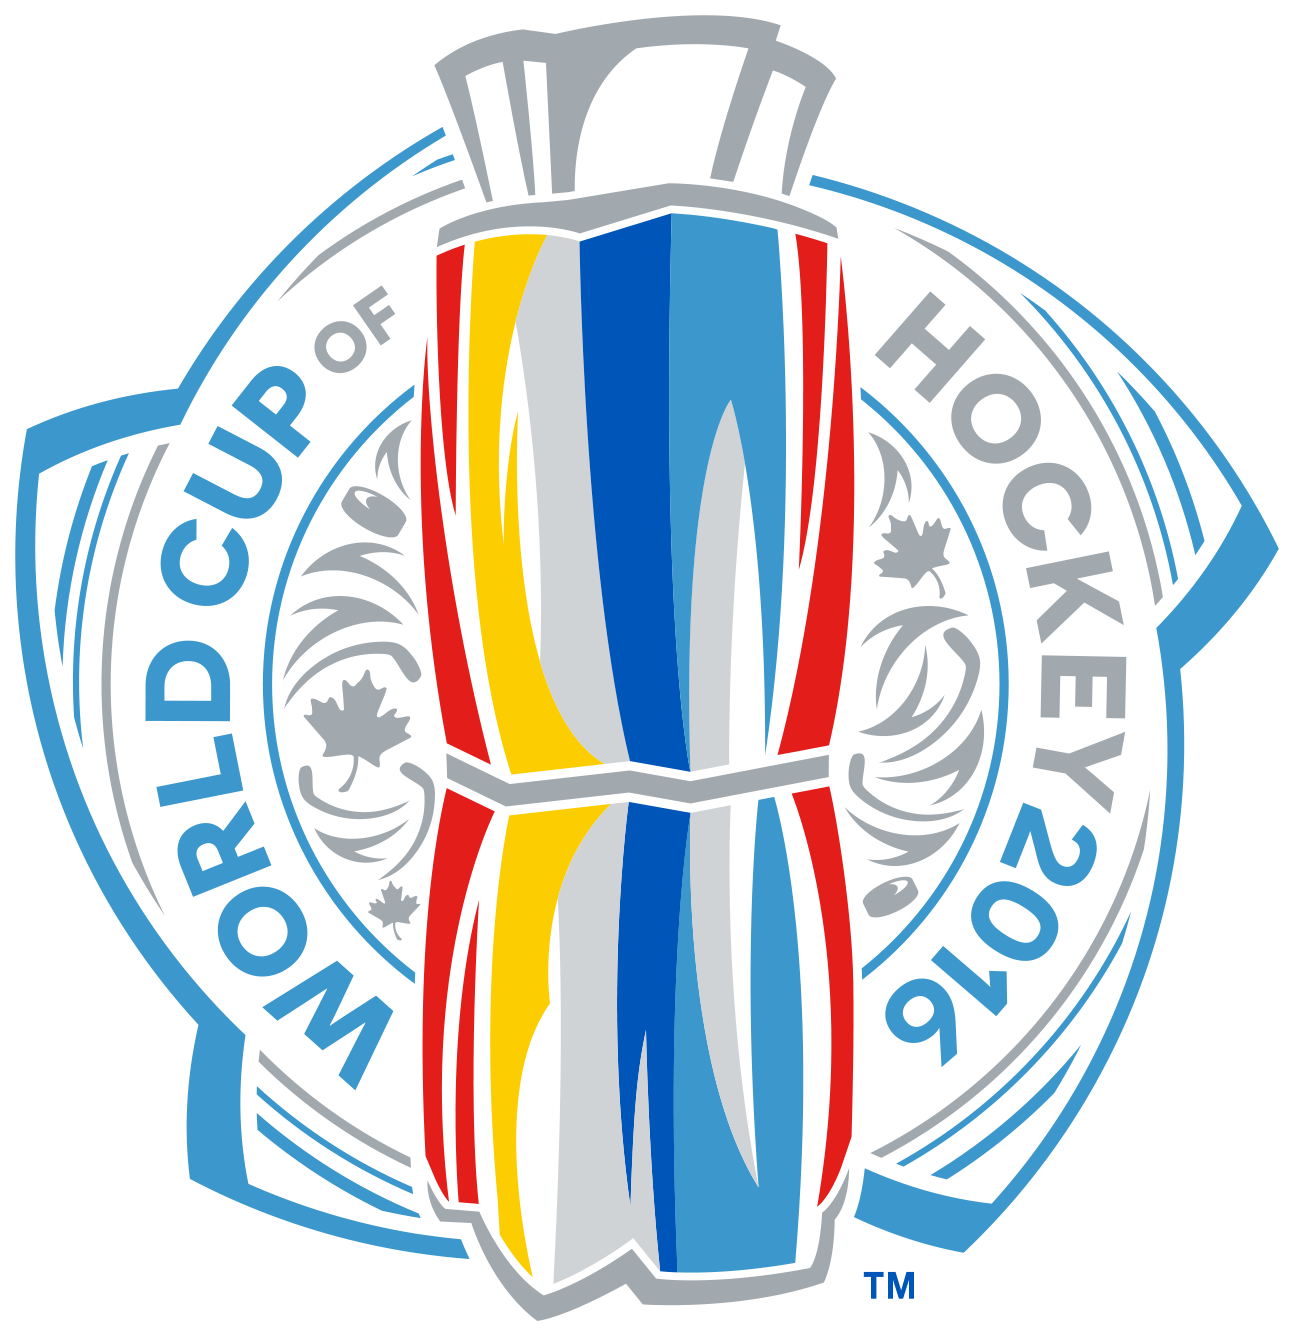 Team russia won the. Medal clipart tournament